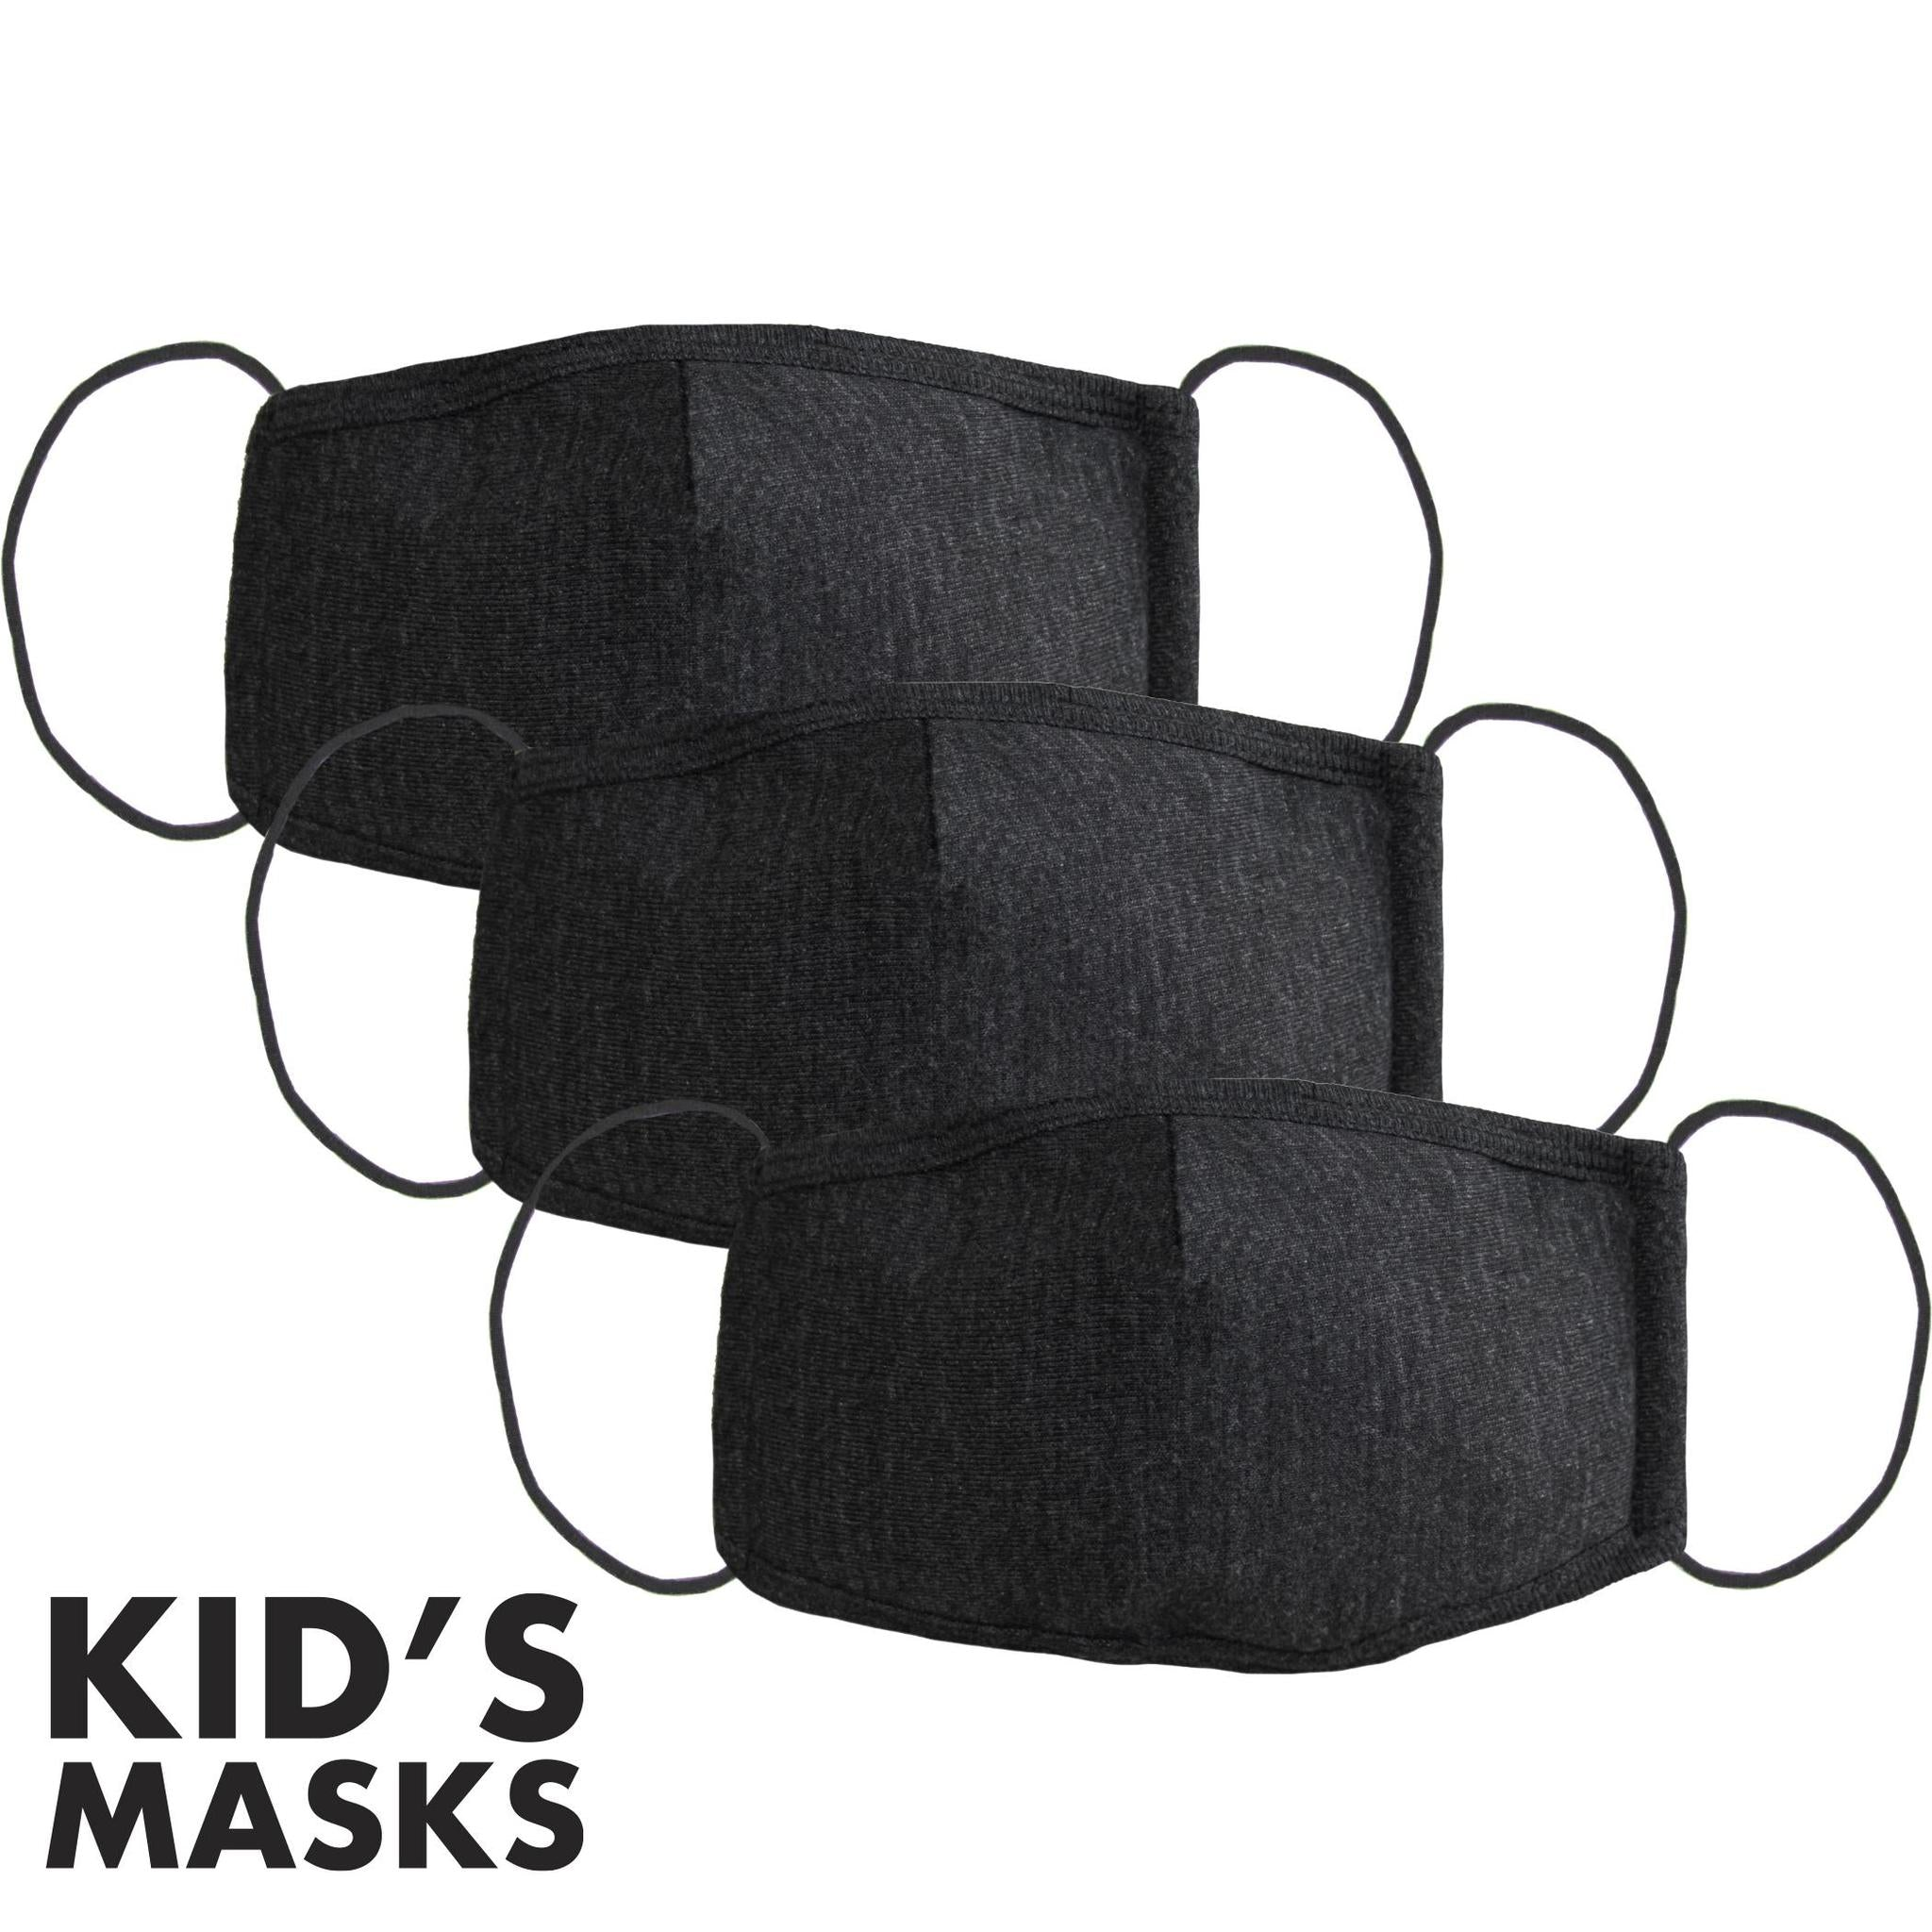 3-Pack Face Mask (Kids)-Mask-KY for KY Store